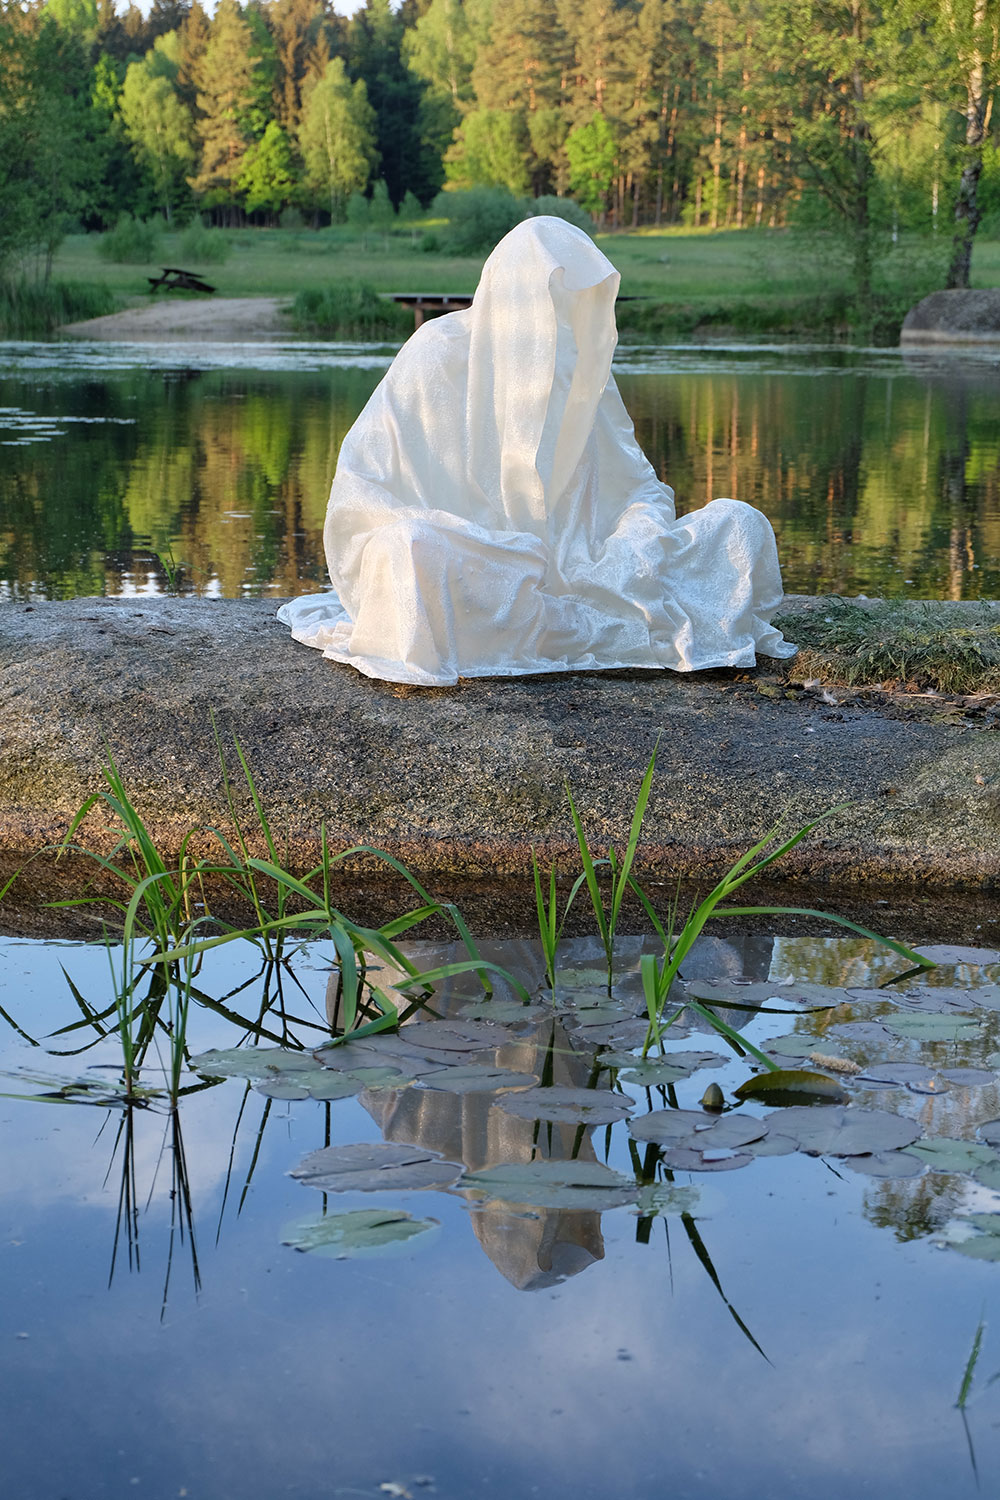 blockheide-gmuend-lower-austria-guardians-of-time-manfred-kili-kielnhofer-contemporary-fine-art-sculpture-arts-arte-2819